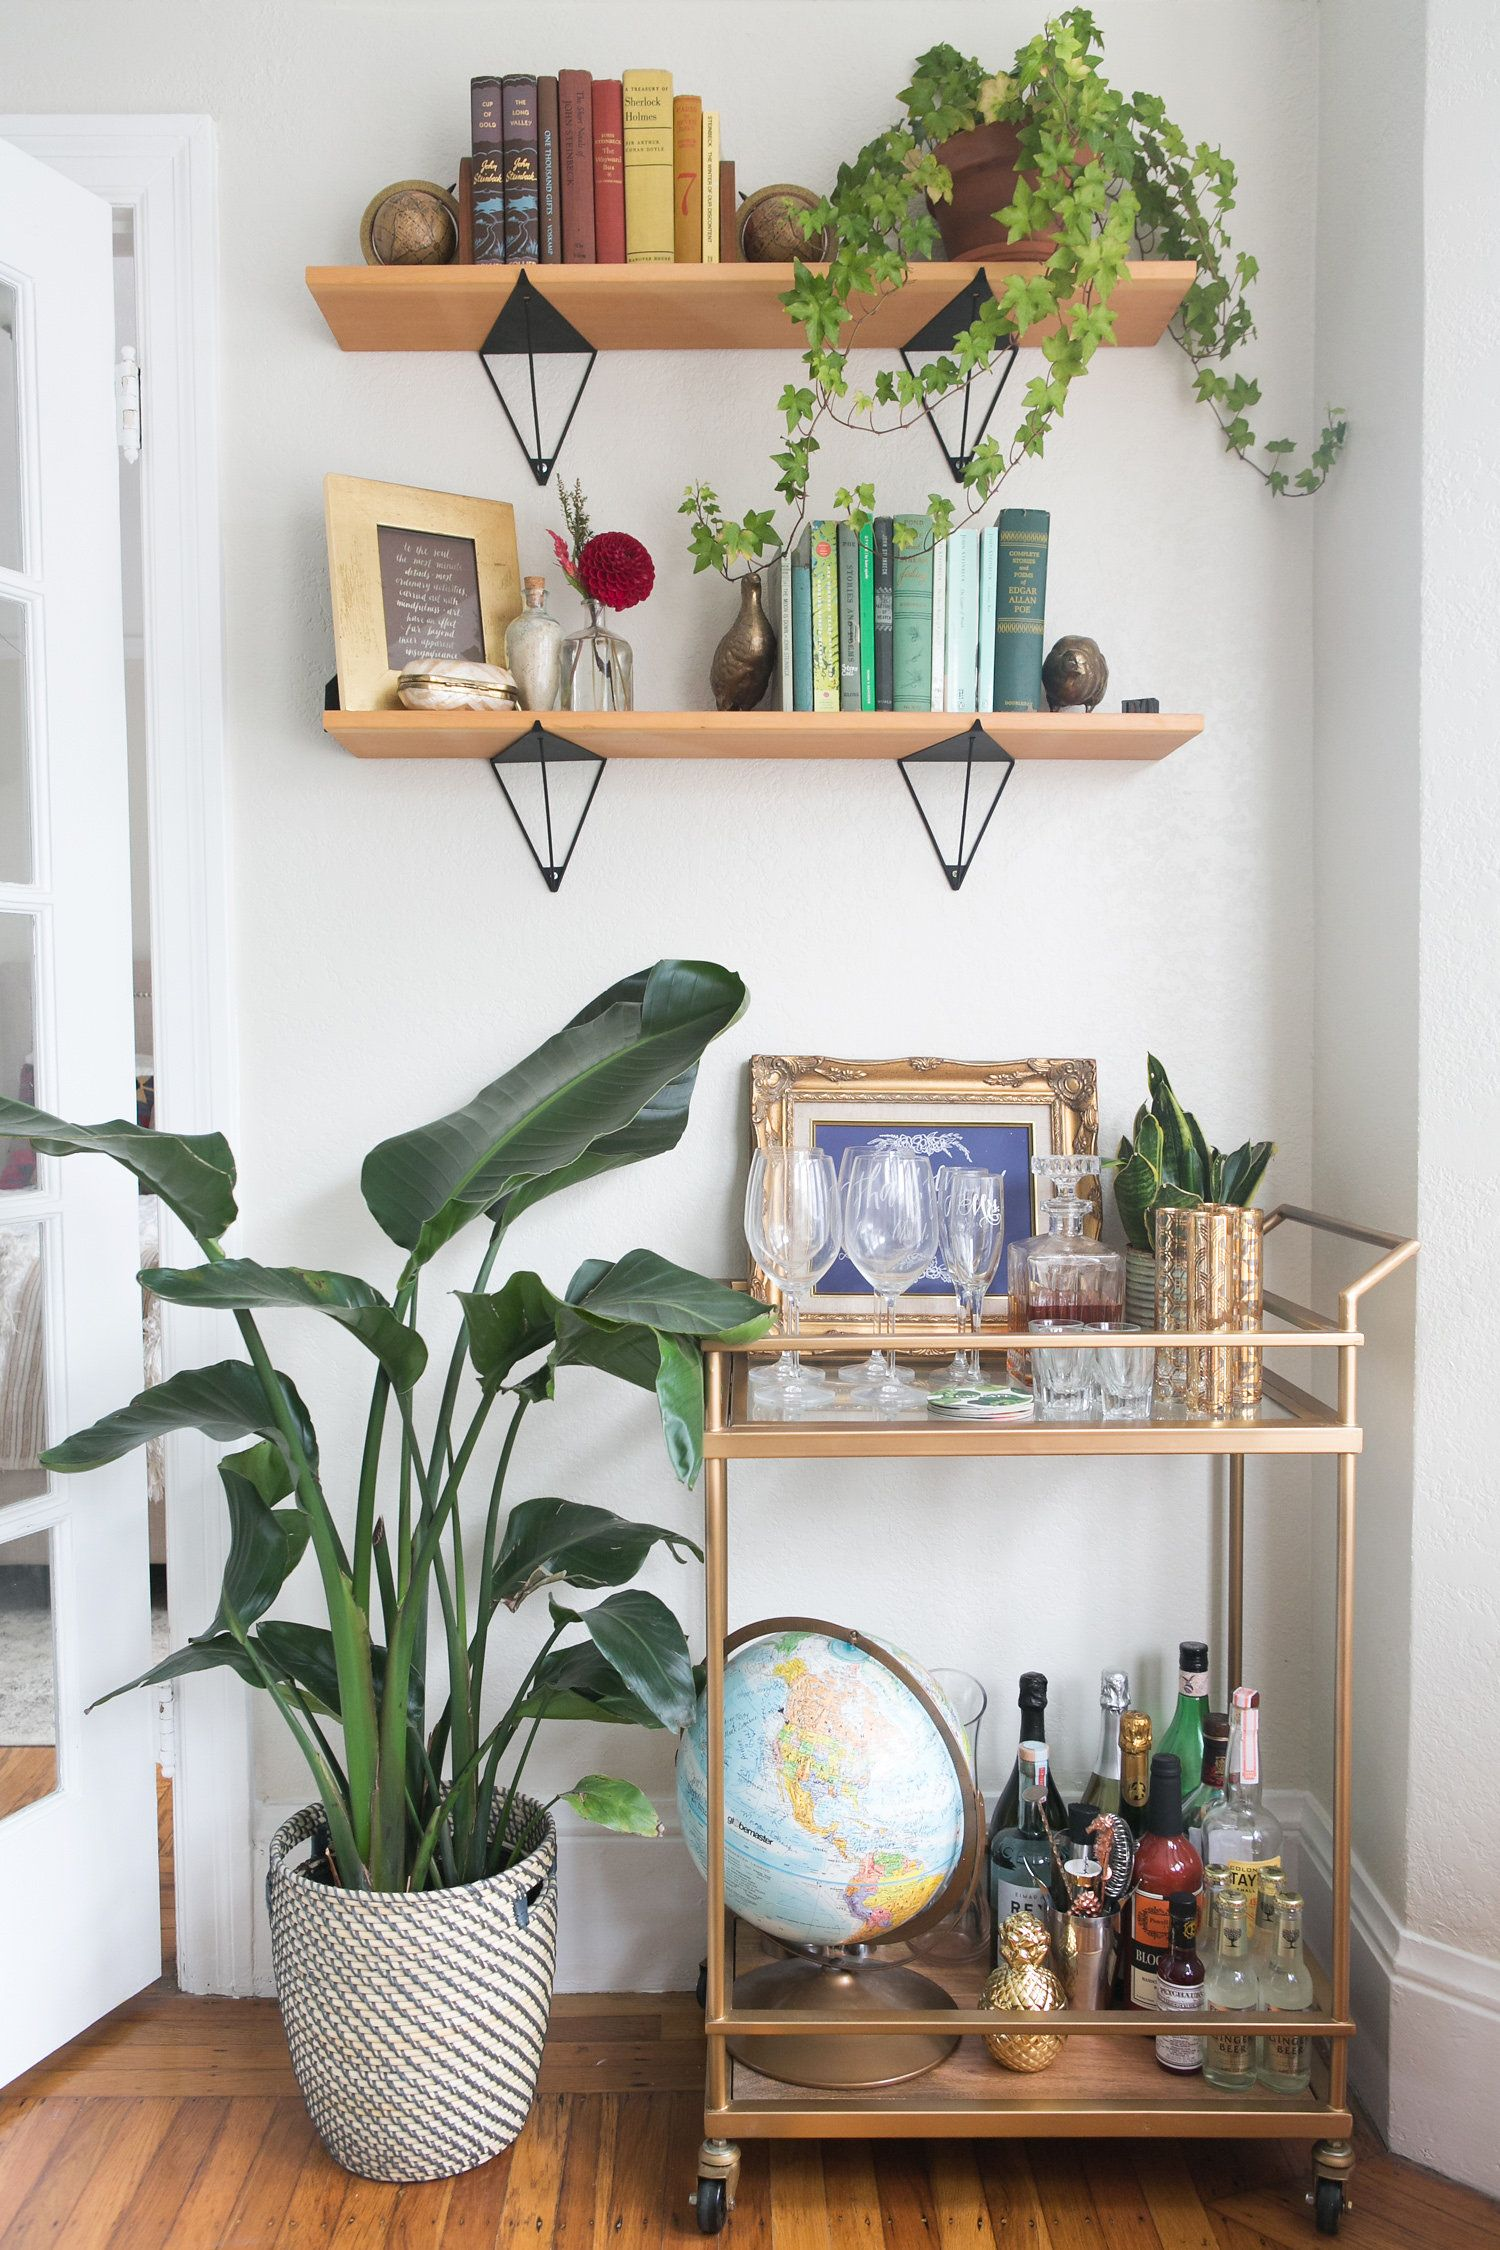 Bar cart and shelves / @theeverygirl home tour | HOUSE & HOME ...